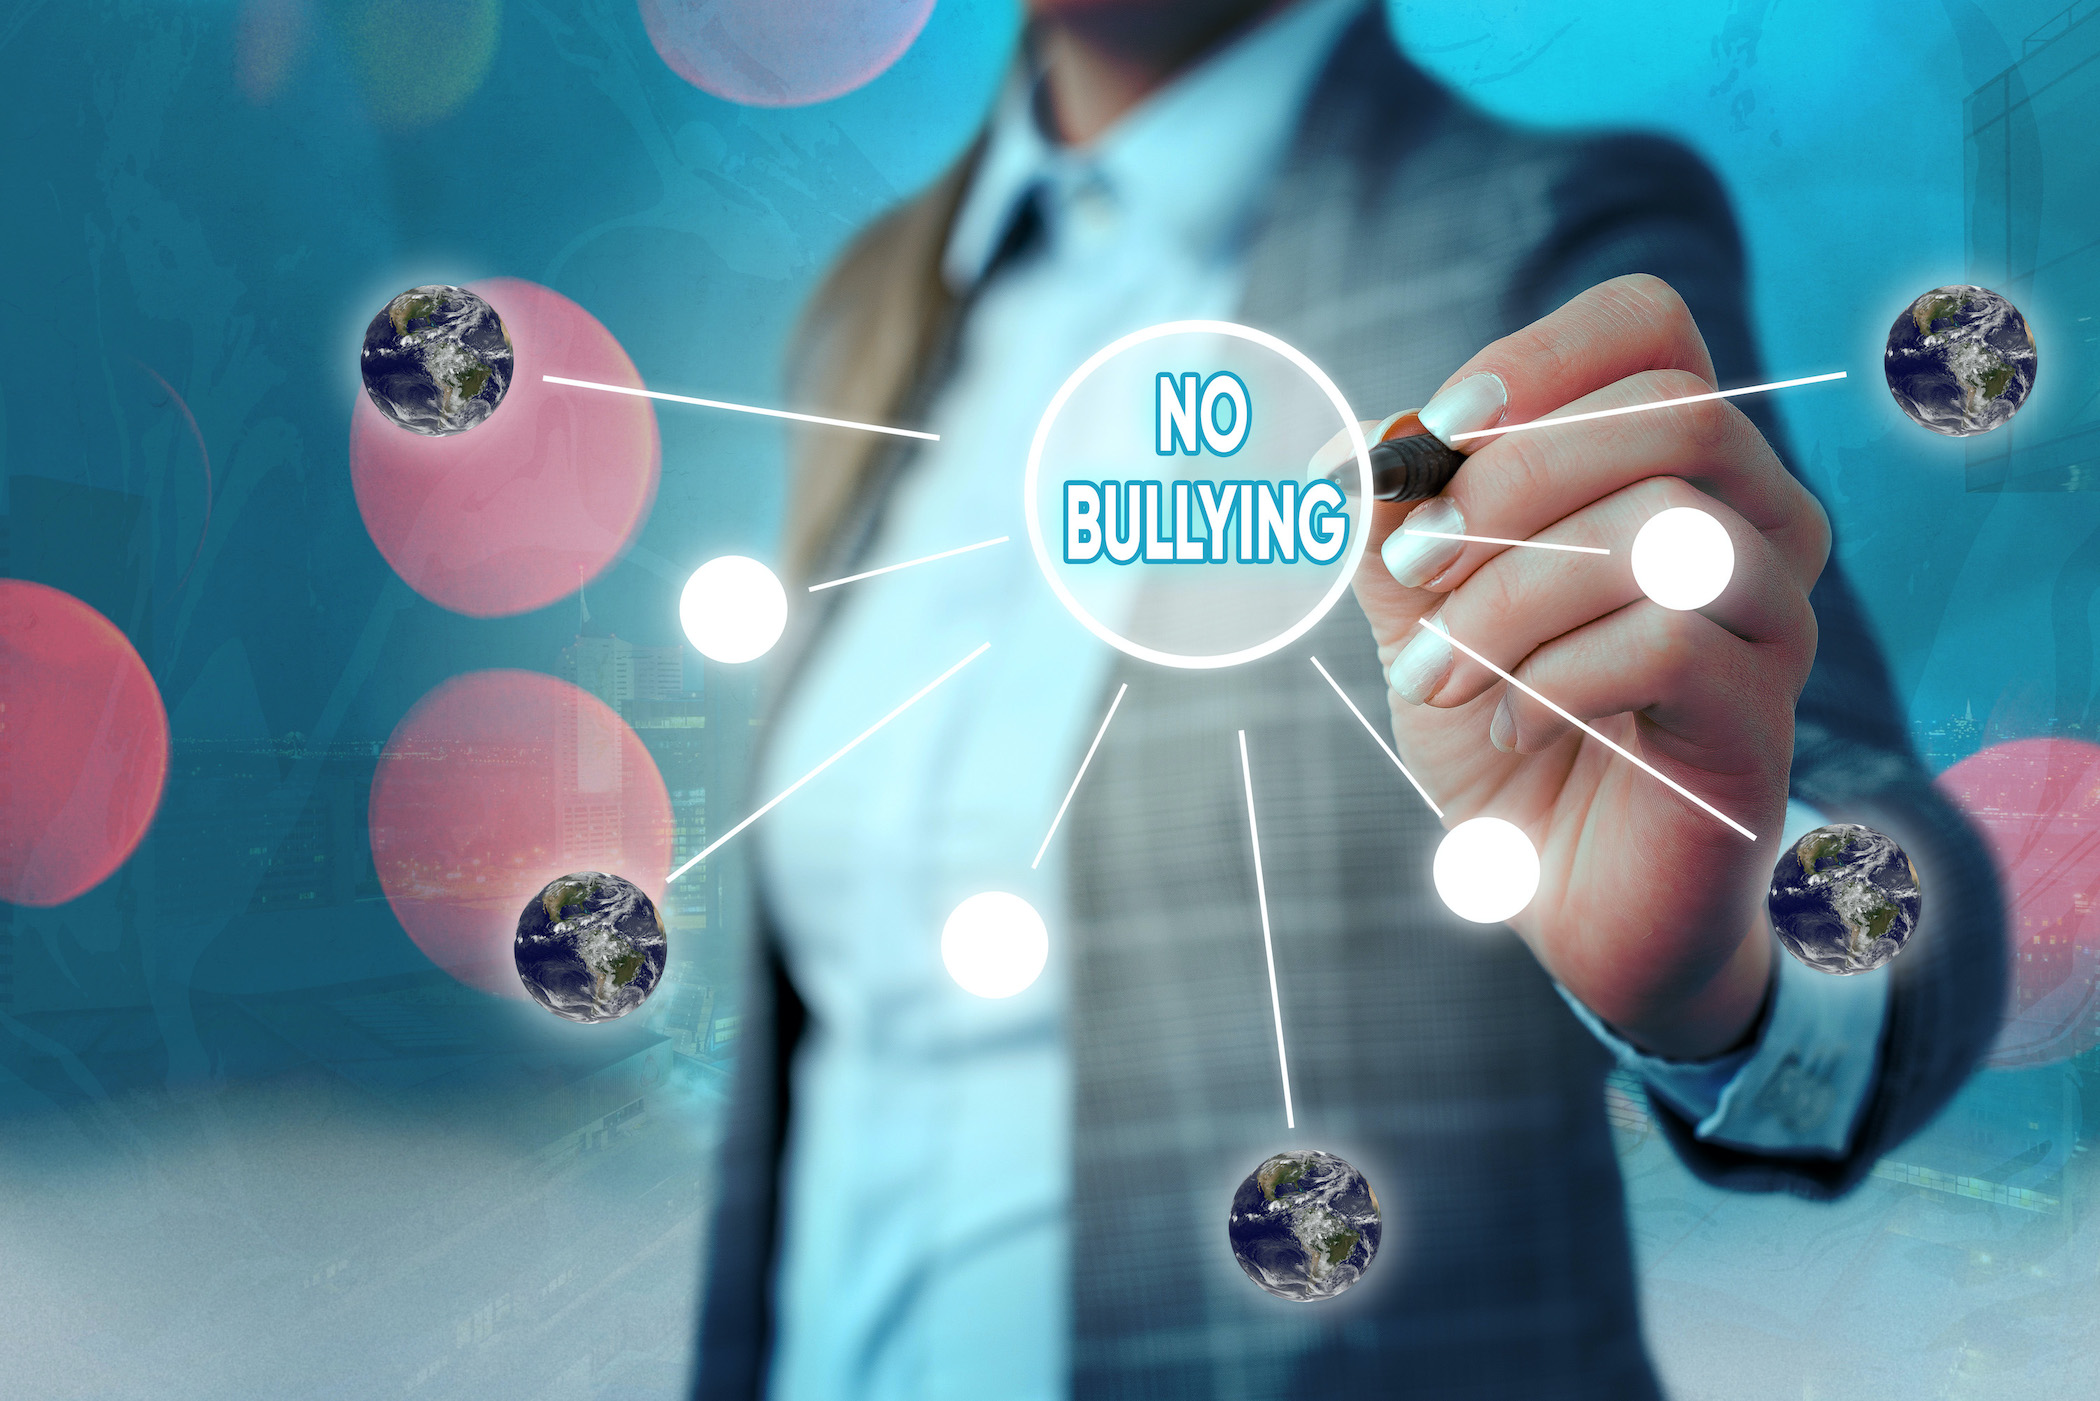 En garde! What strategies can you implement to prevent workplace bullying in the return to work?